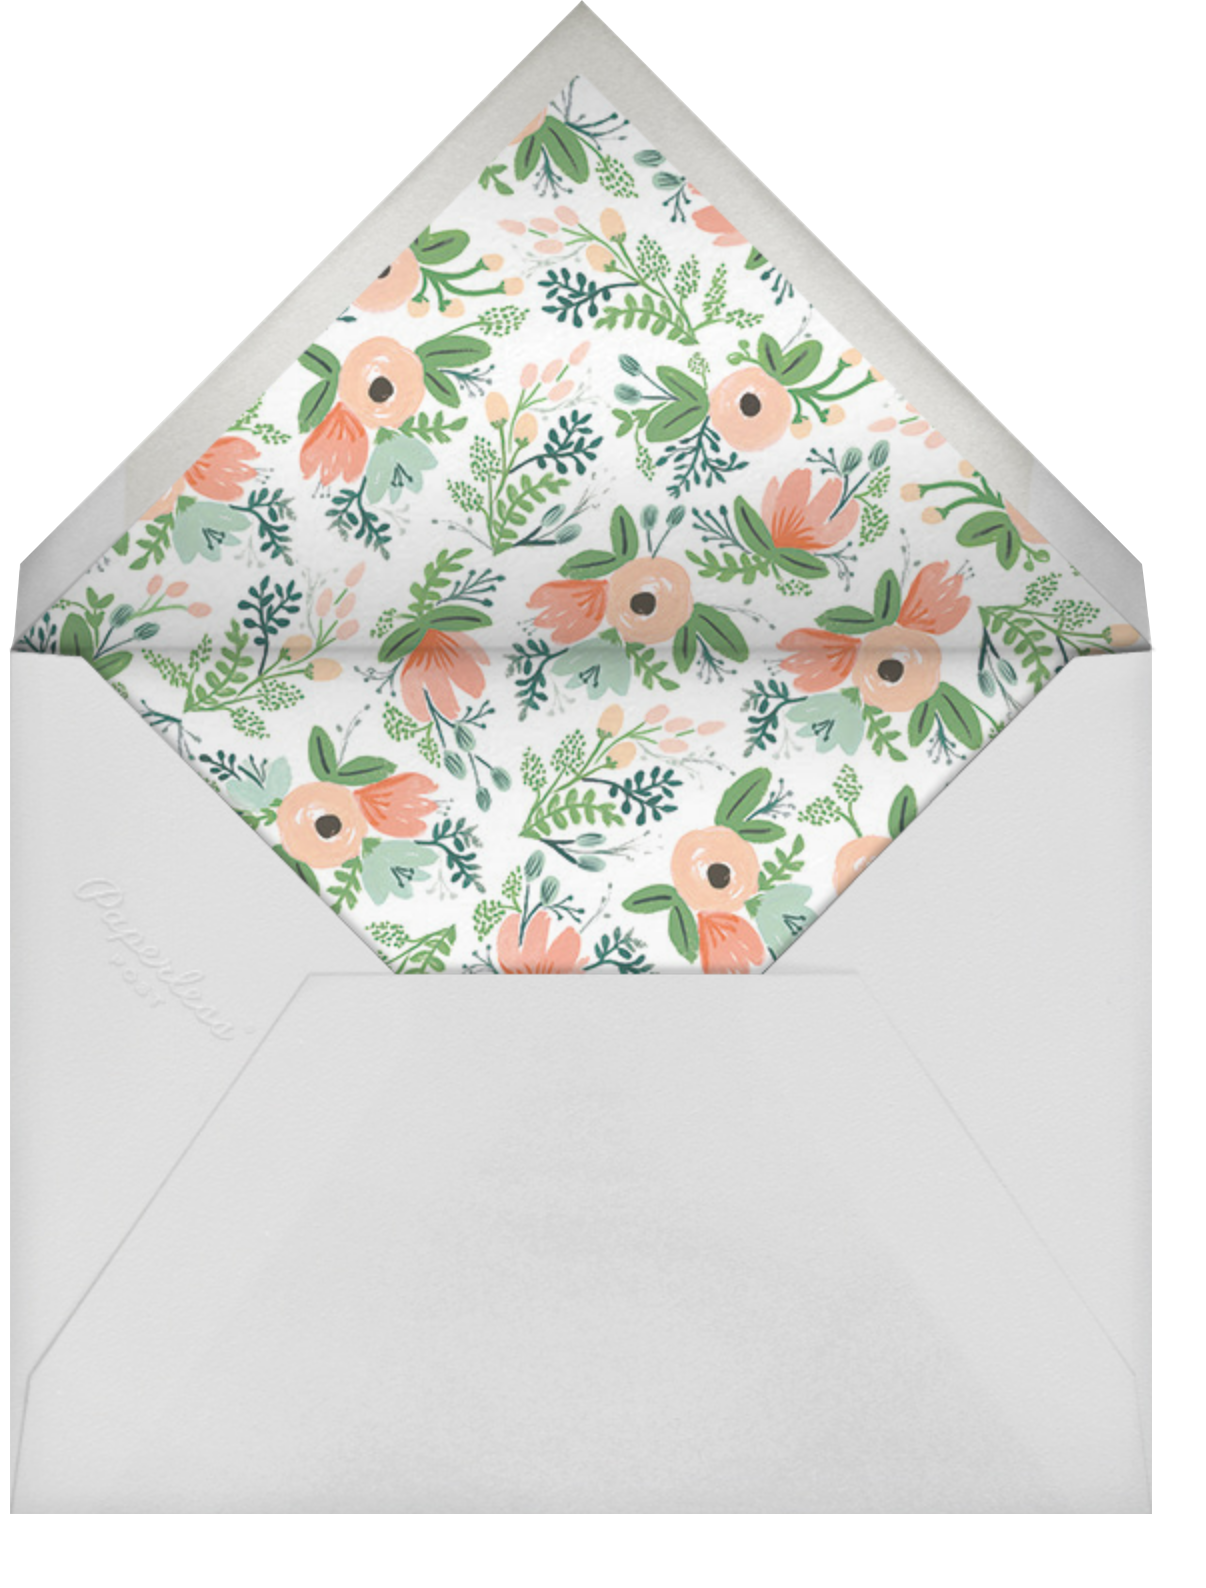 Floral Silhouette (Invitation) - White/Rose Gold - Rifle Paper Co. - All - envelope back